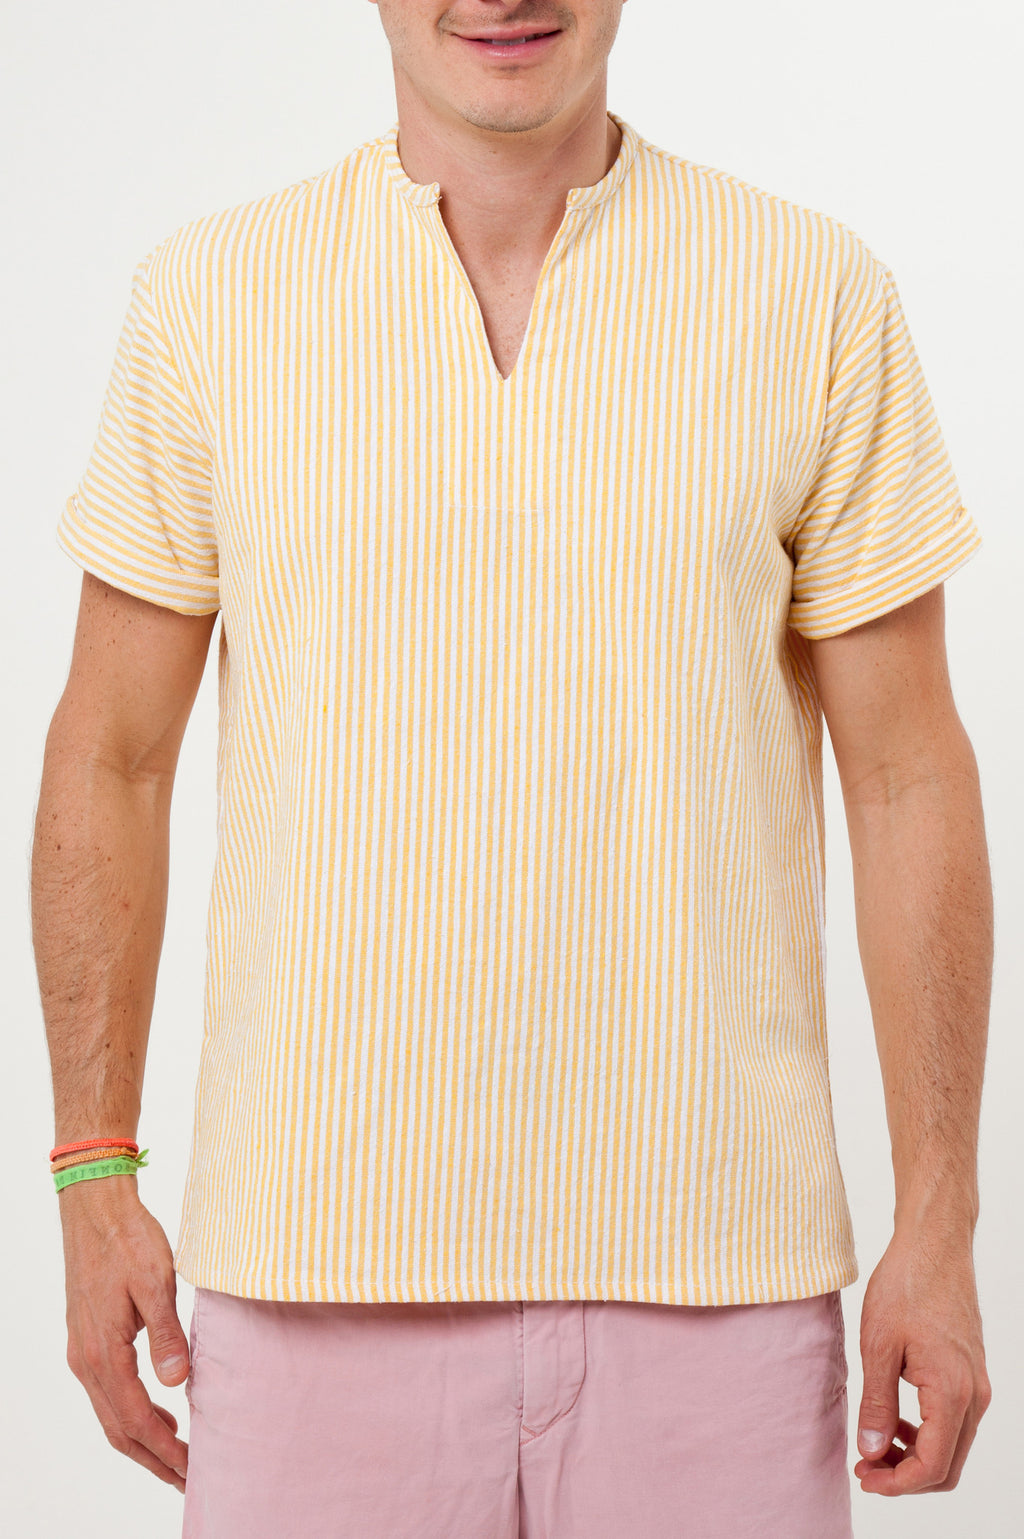 THE RIVIERA SHIRT IN YELLOW